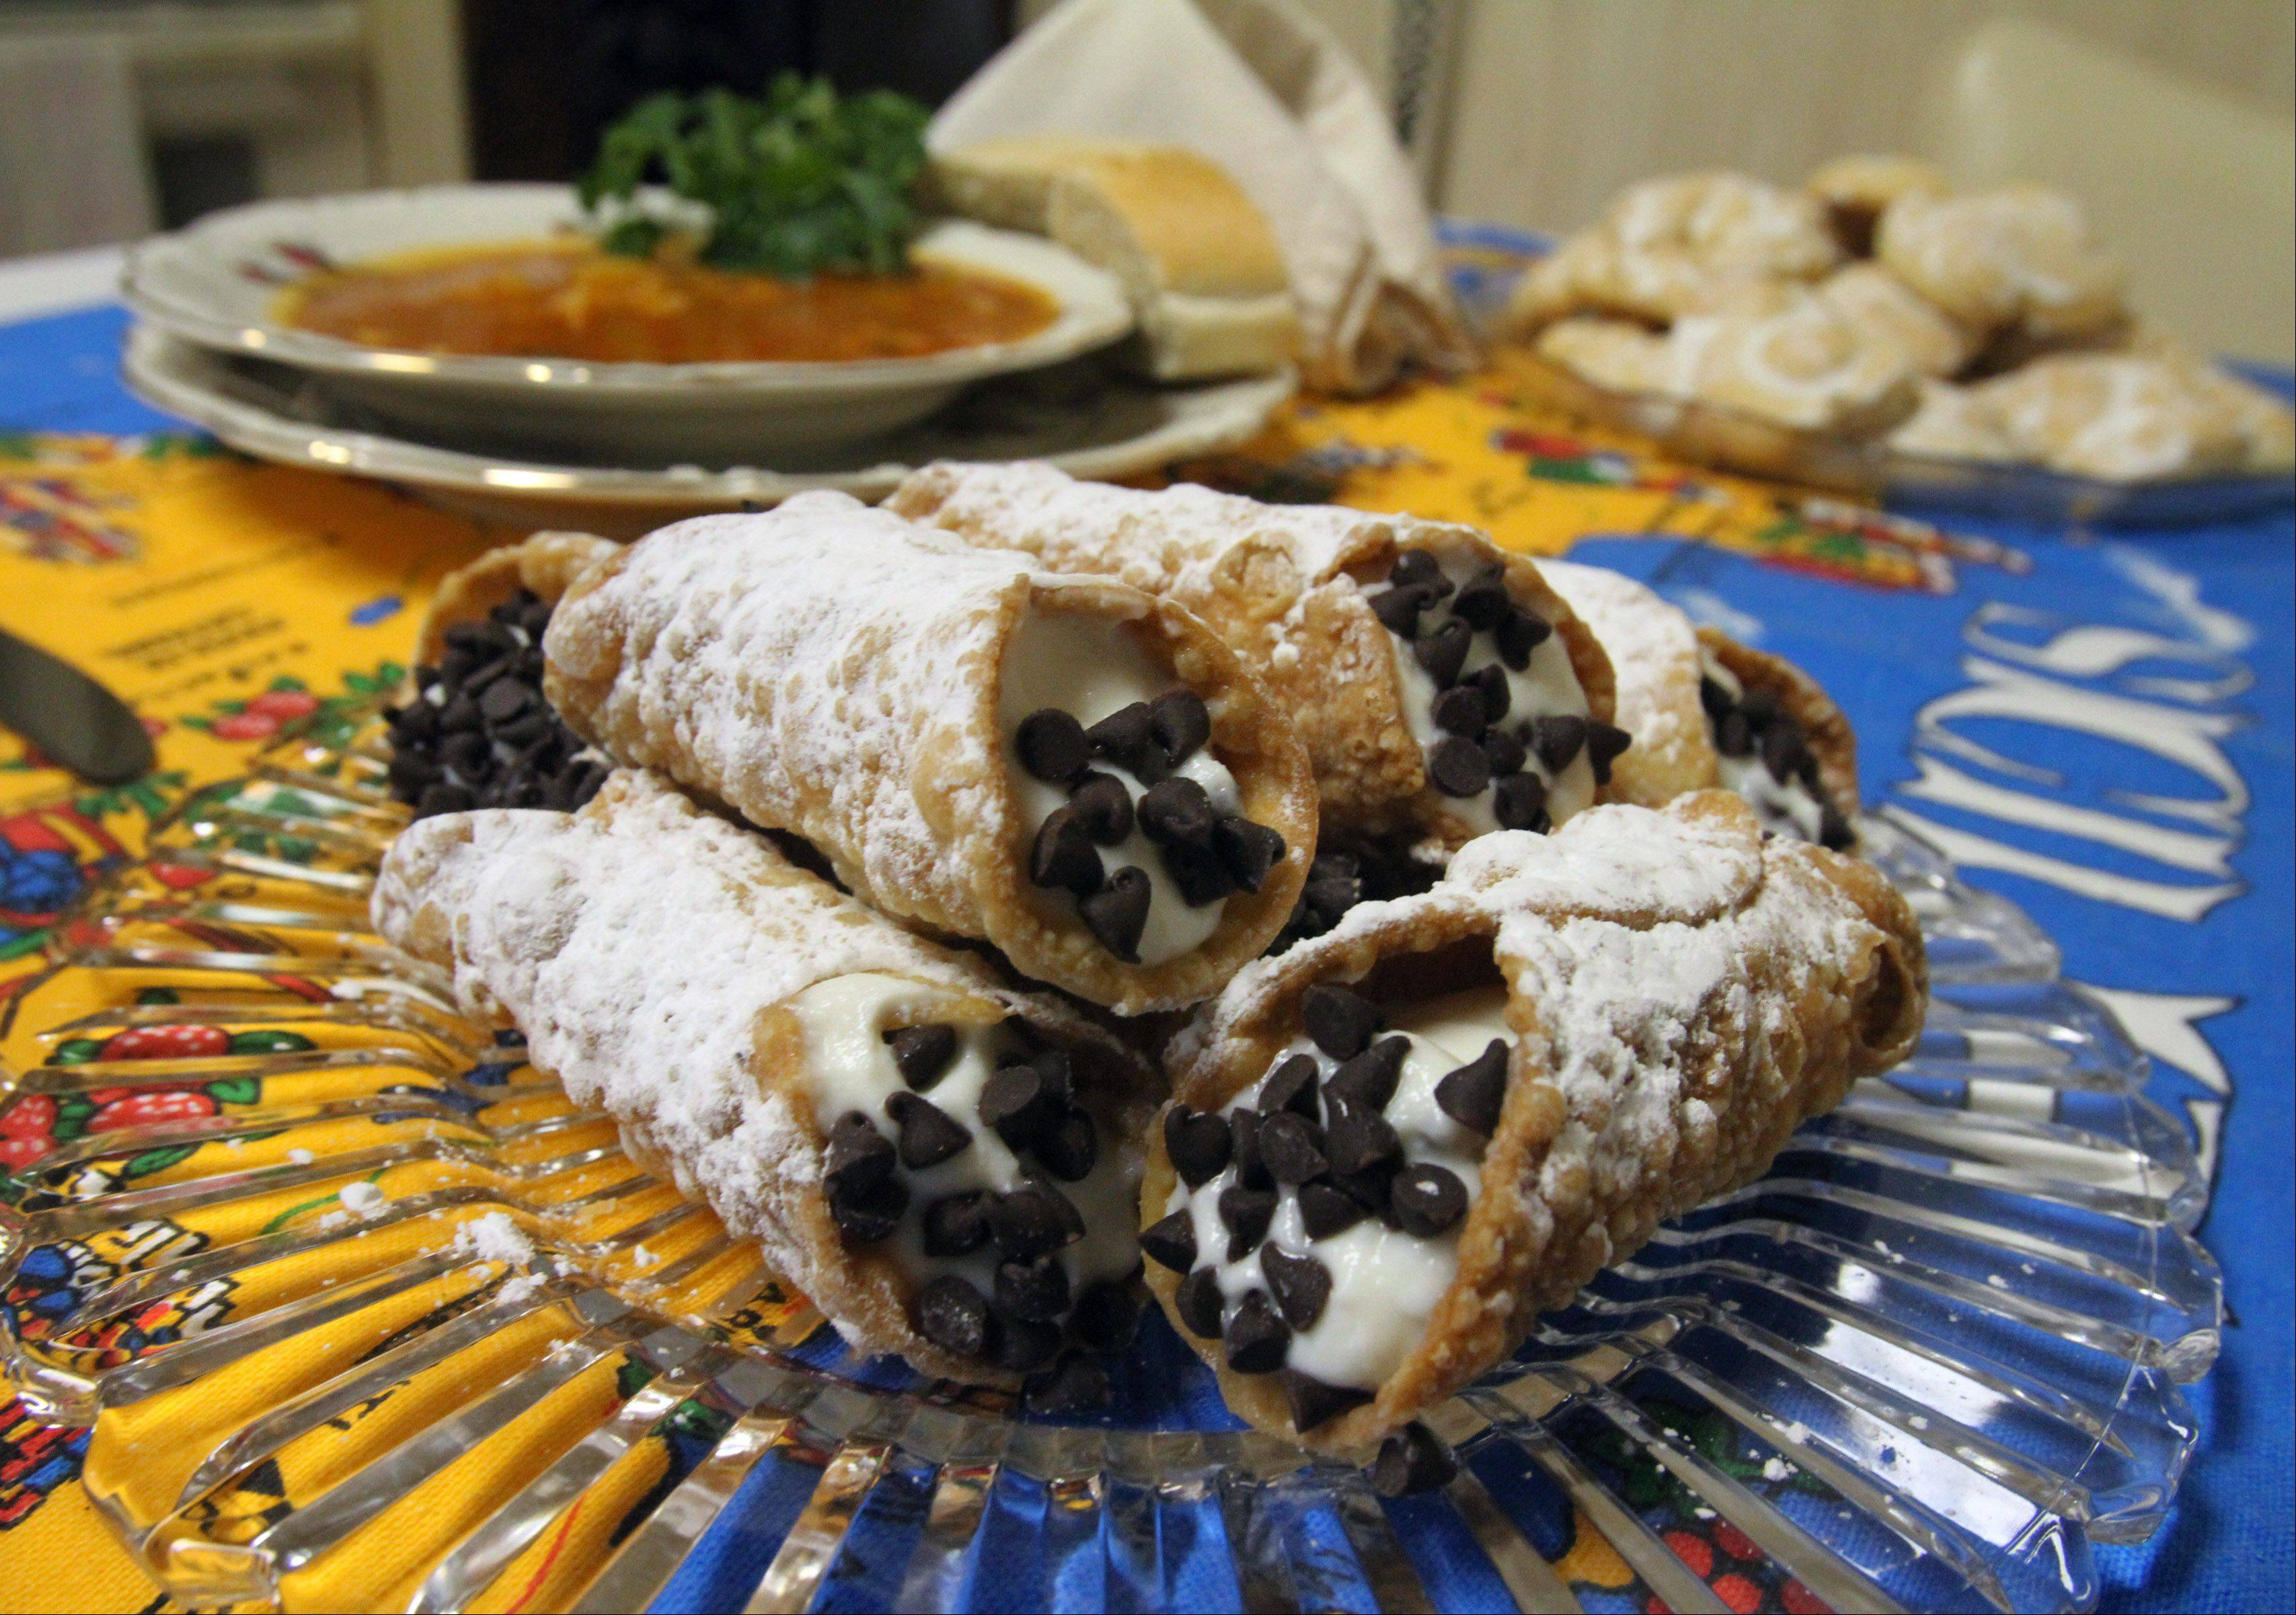 Cinnamon oil and vanilla powder flavor the filling in Angie Gergen's homemade cannolis.